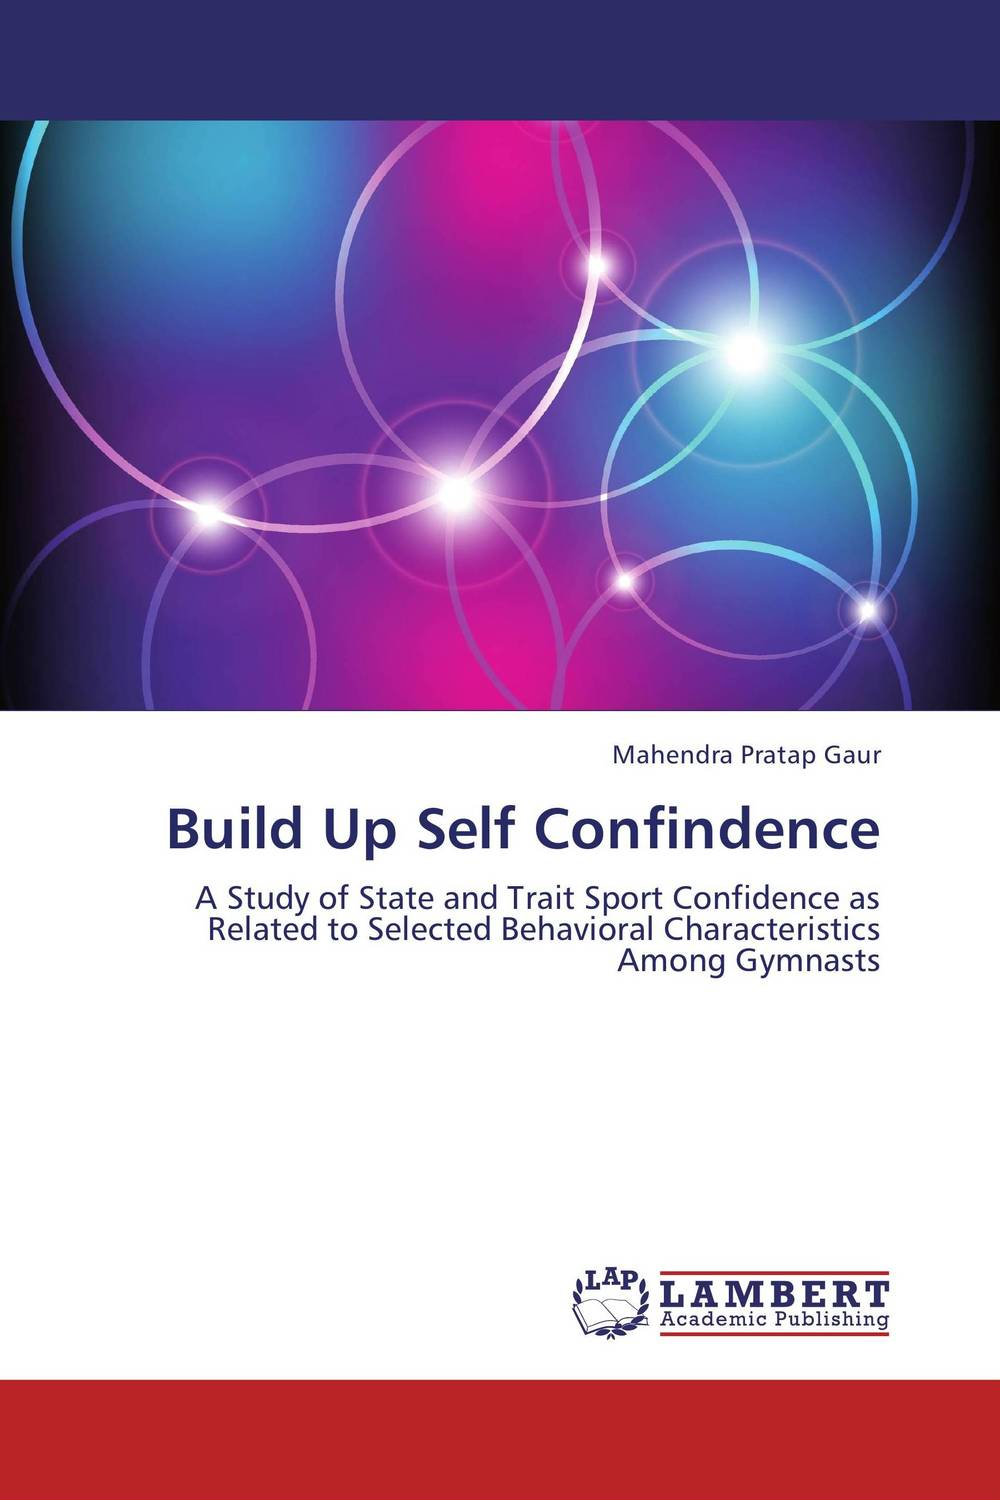 Build Up Self Confindence